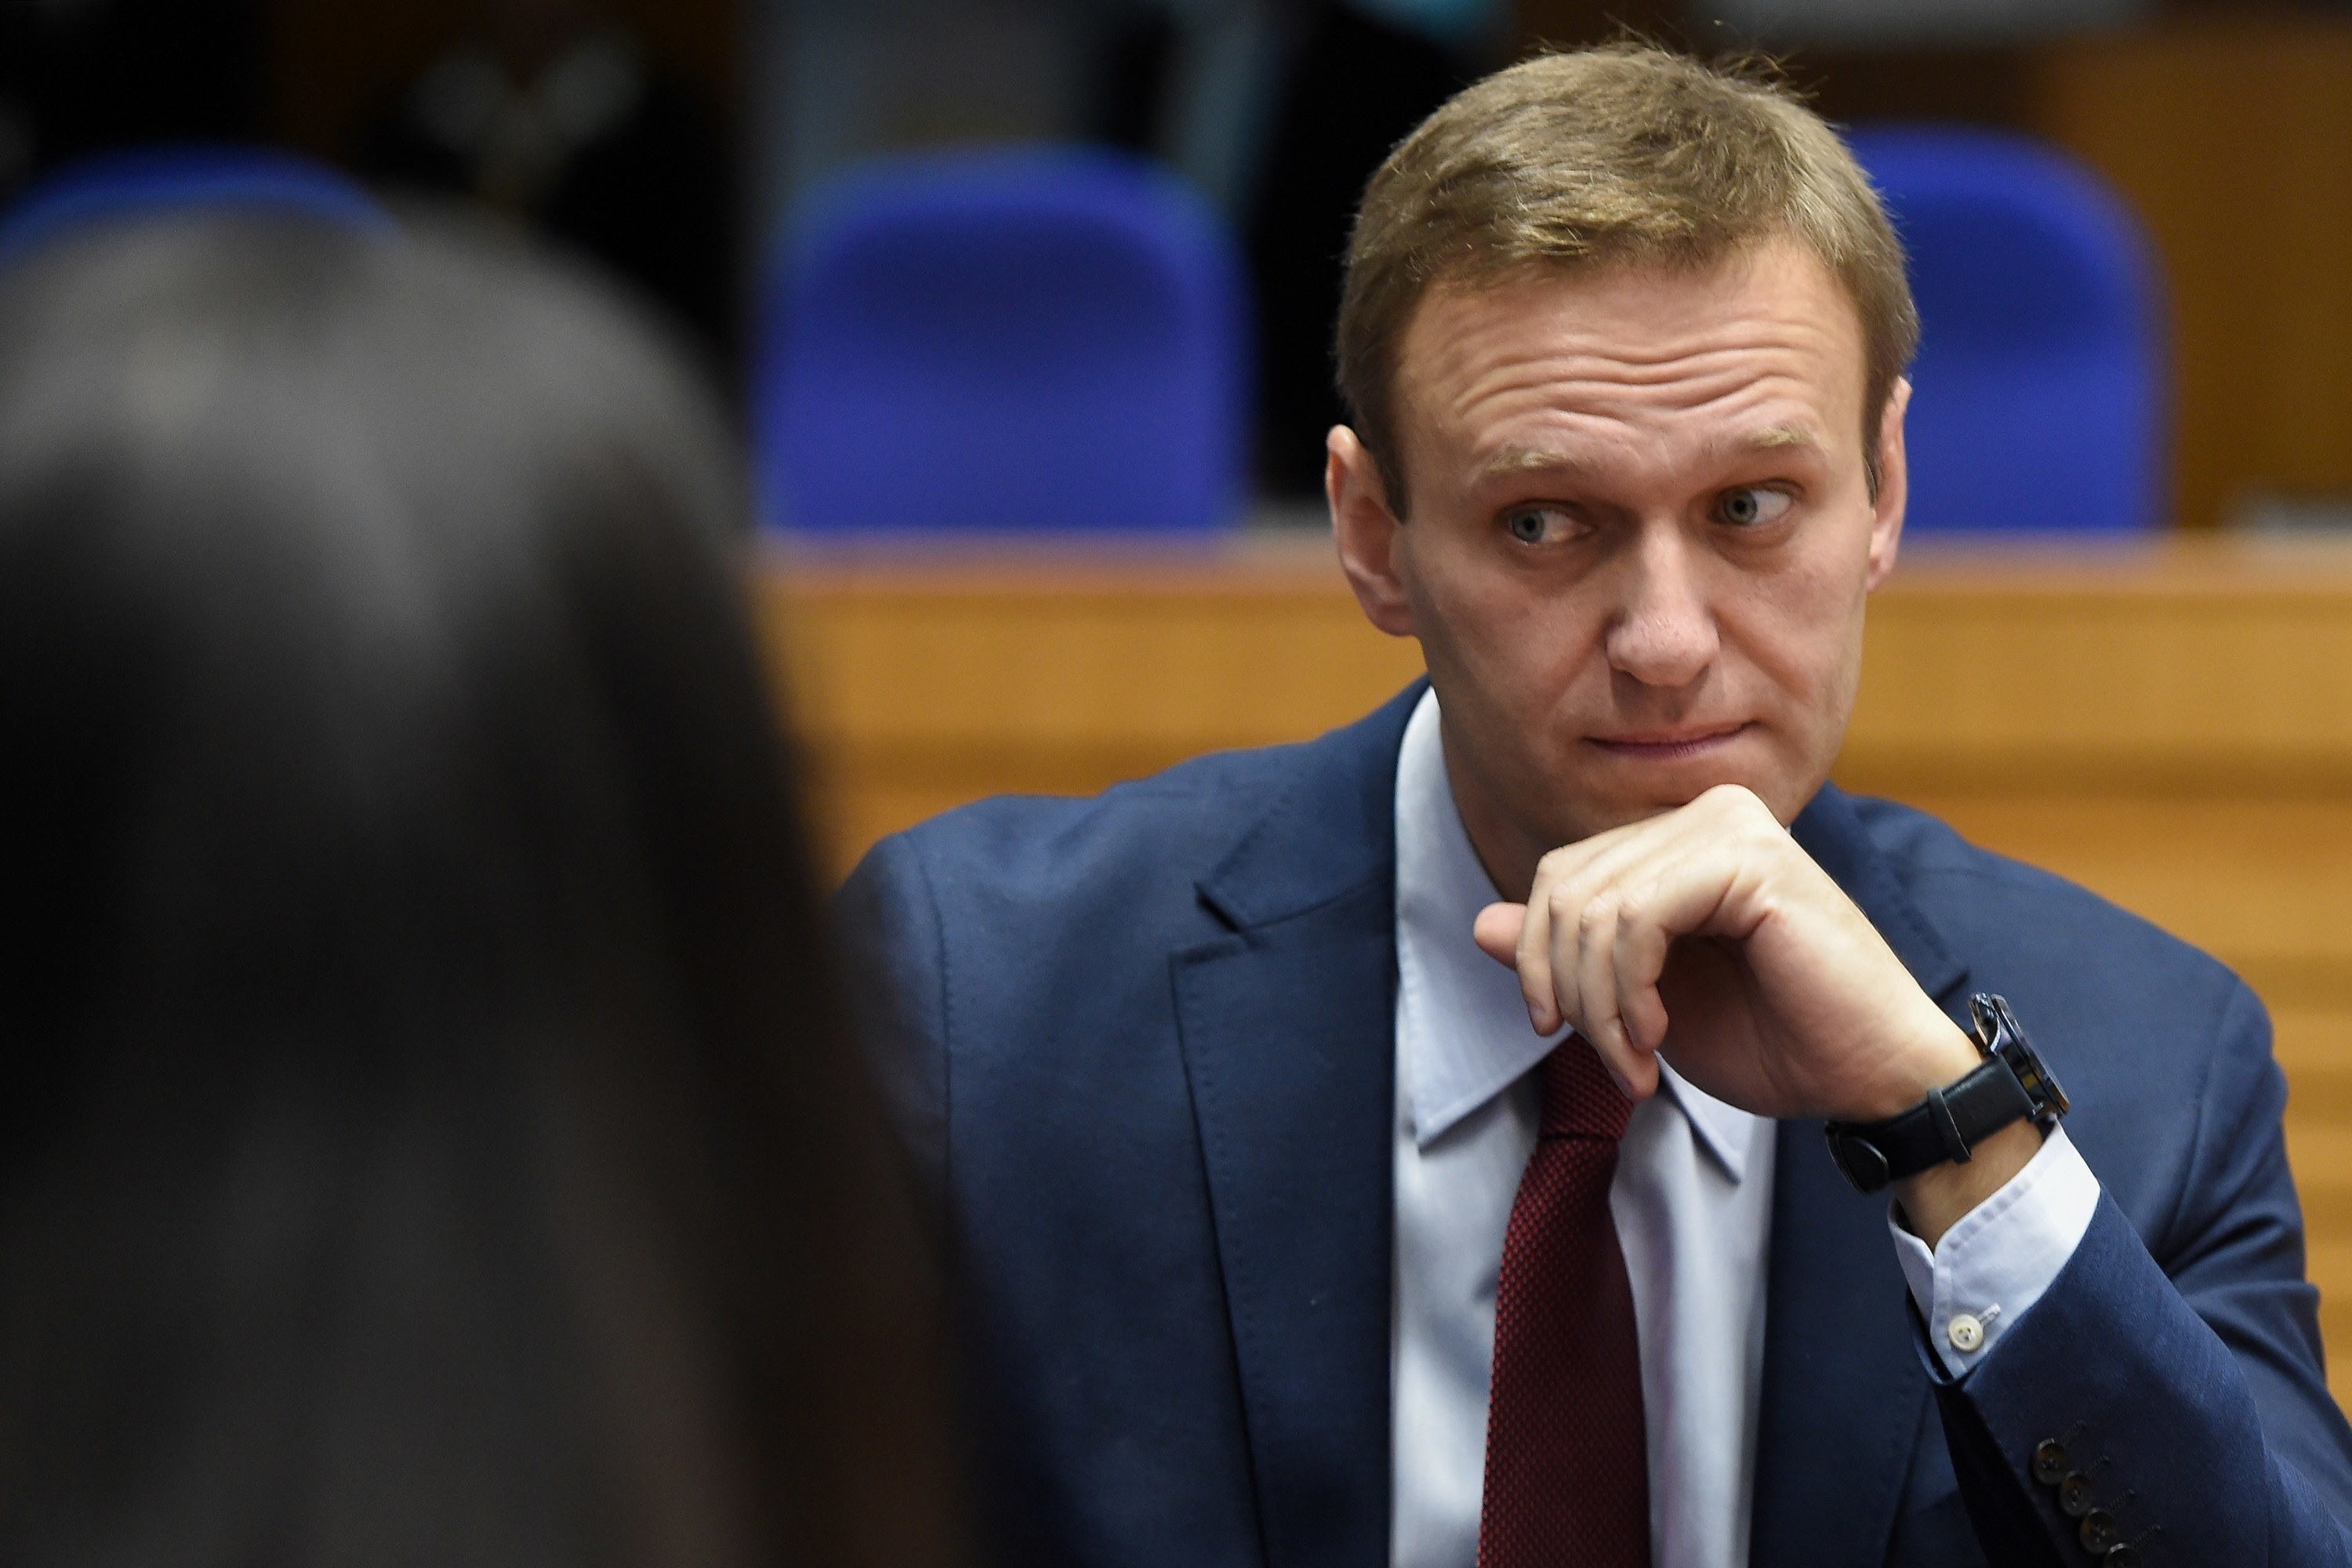 Navalny sits wearing a suit at a hearing